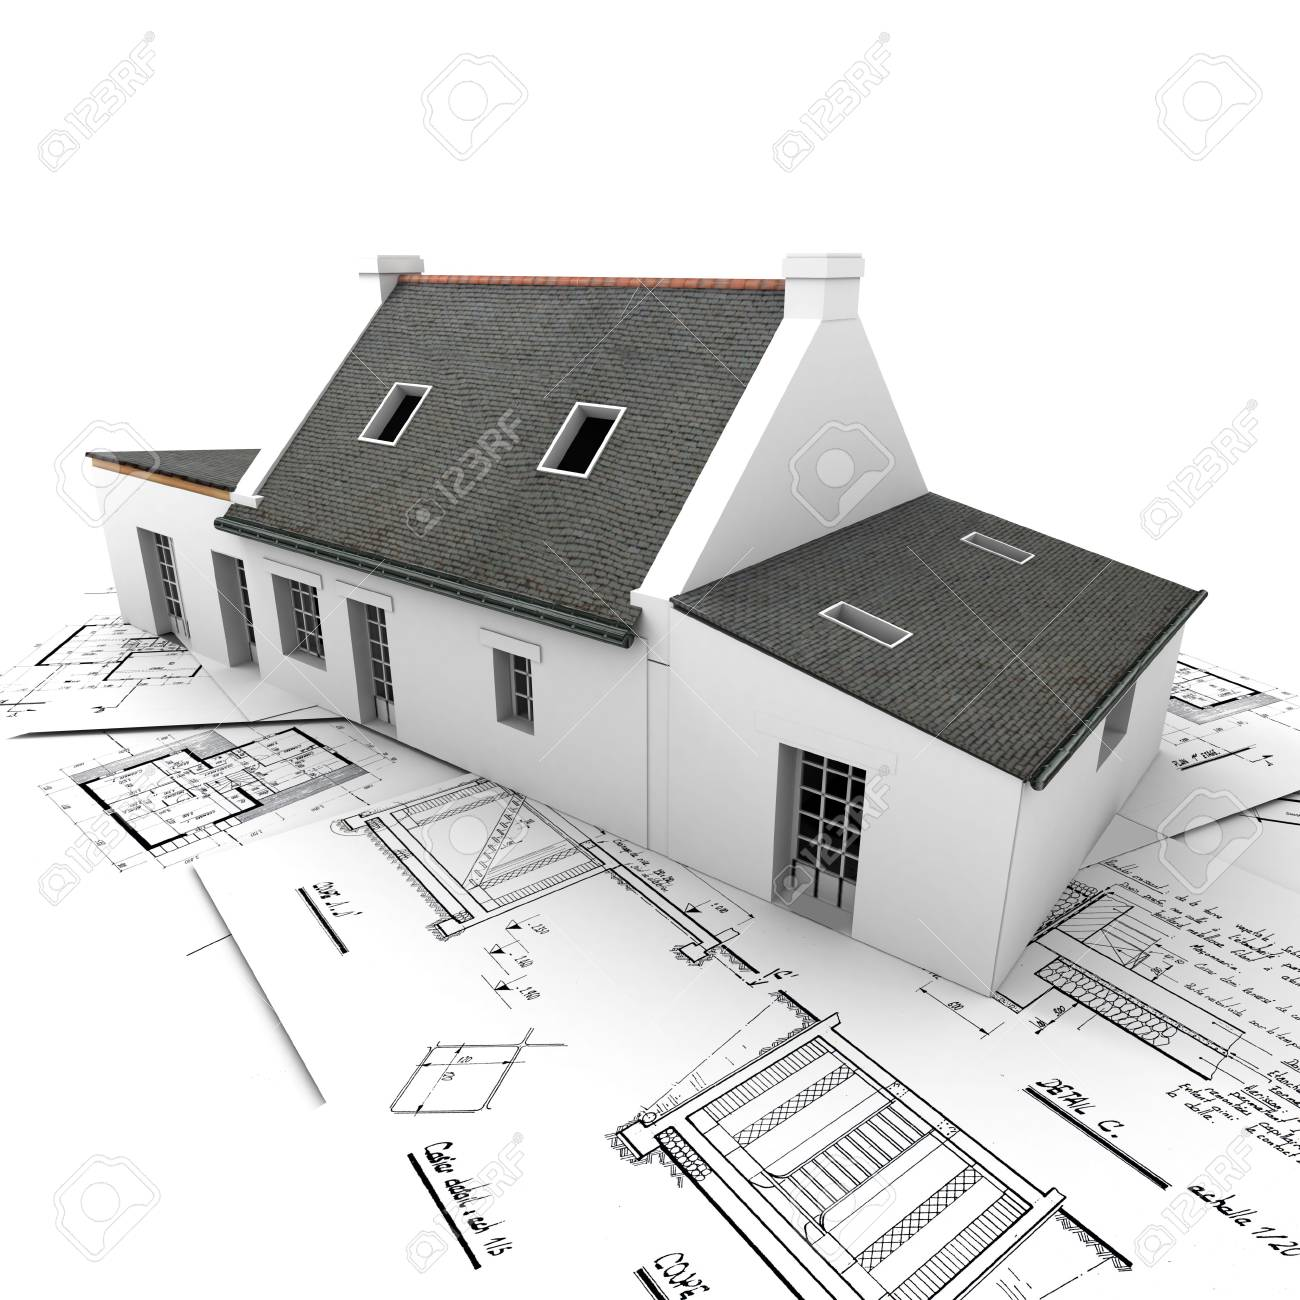 3D Rendering Of A House On Top Architecture Blueprints Stock Photo